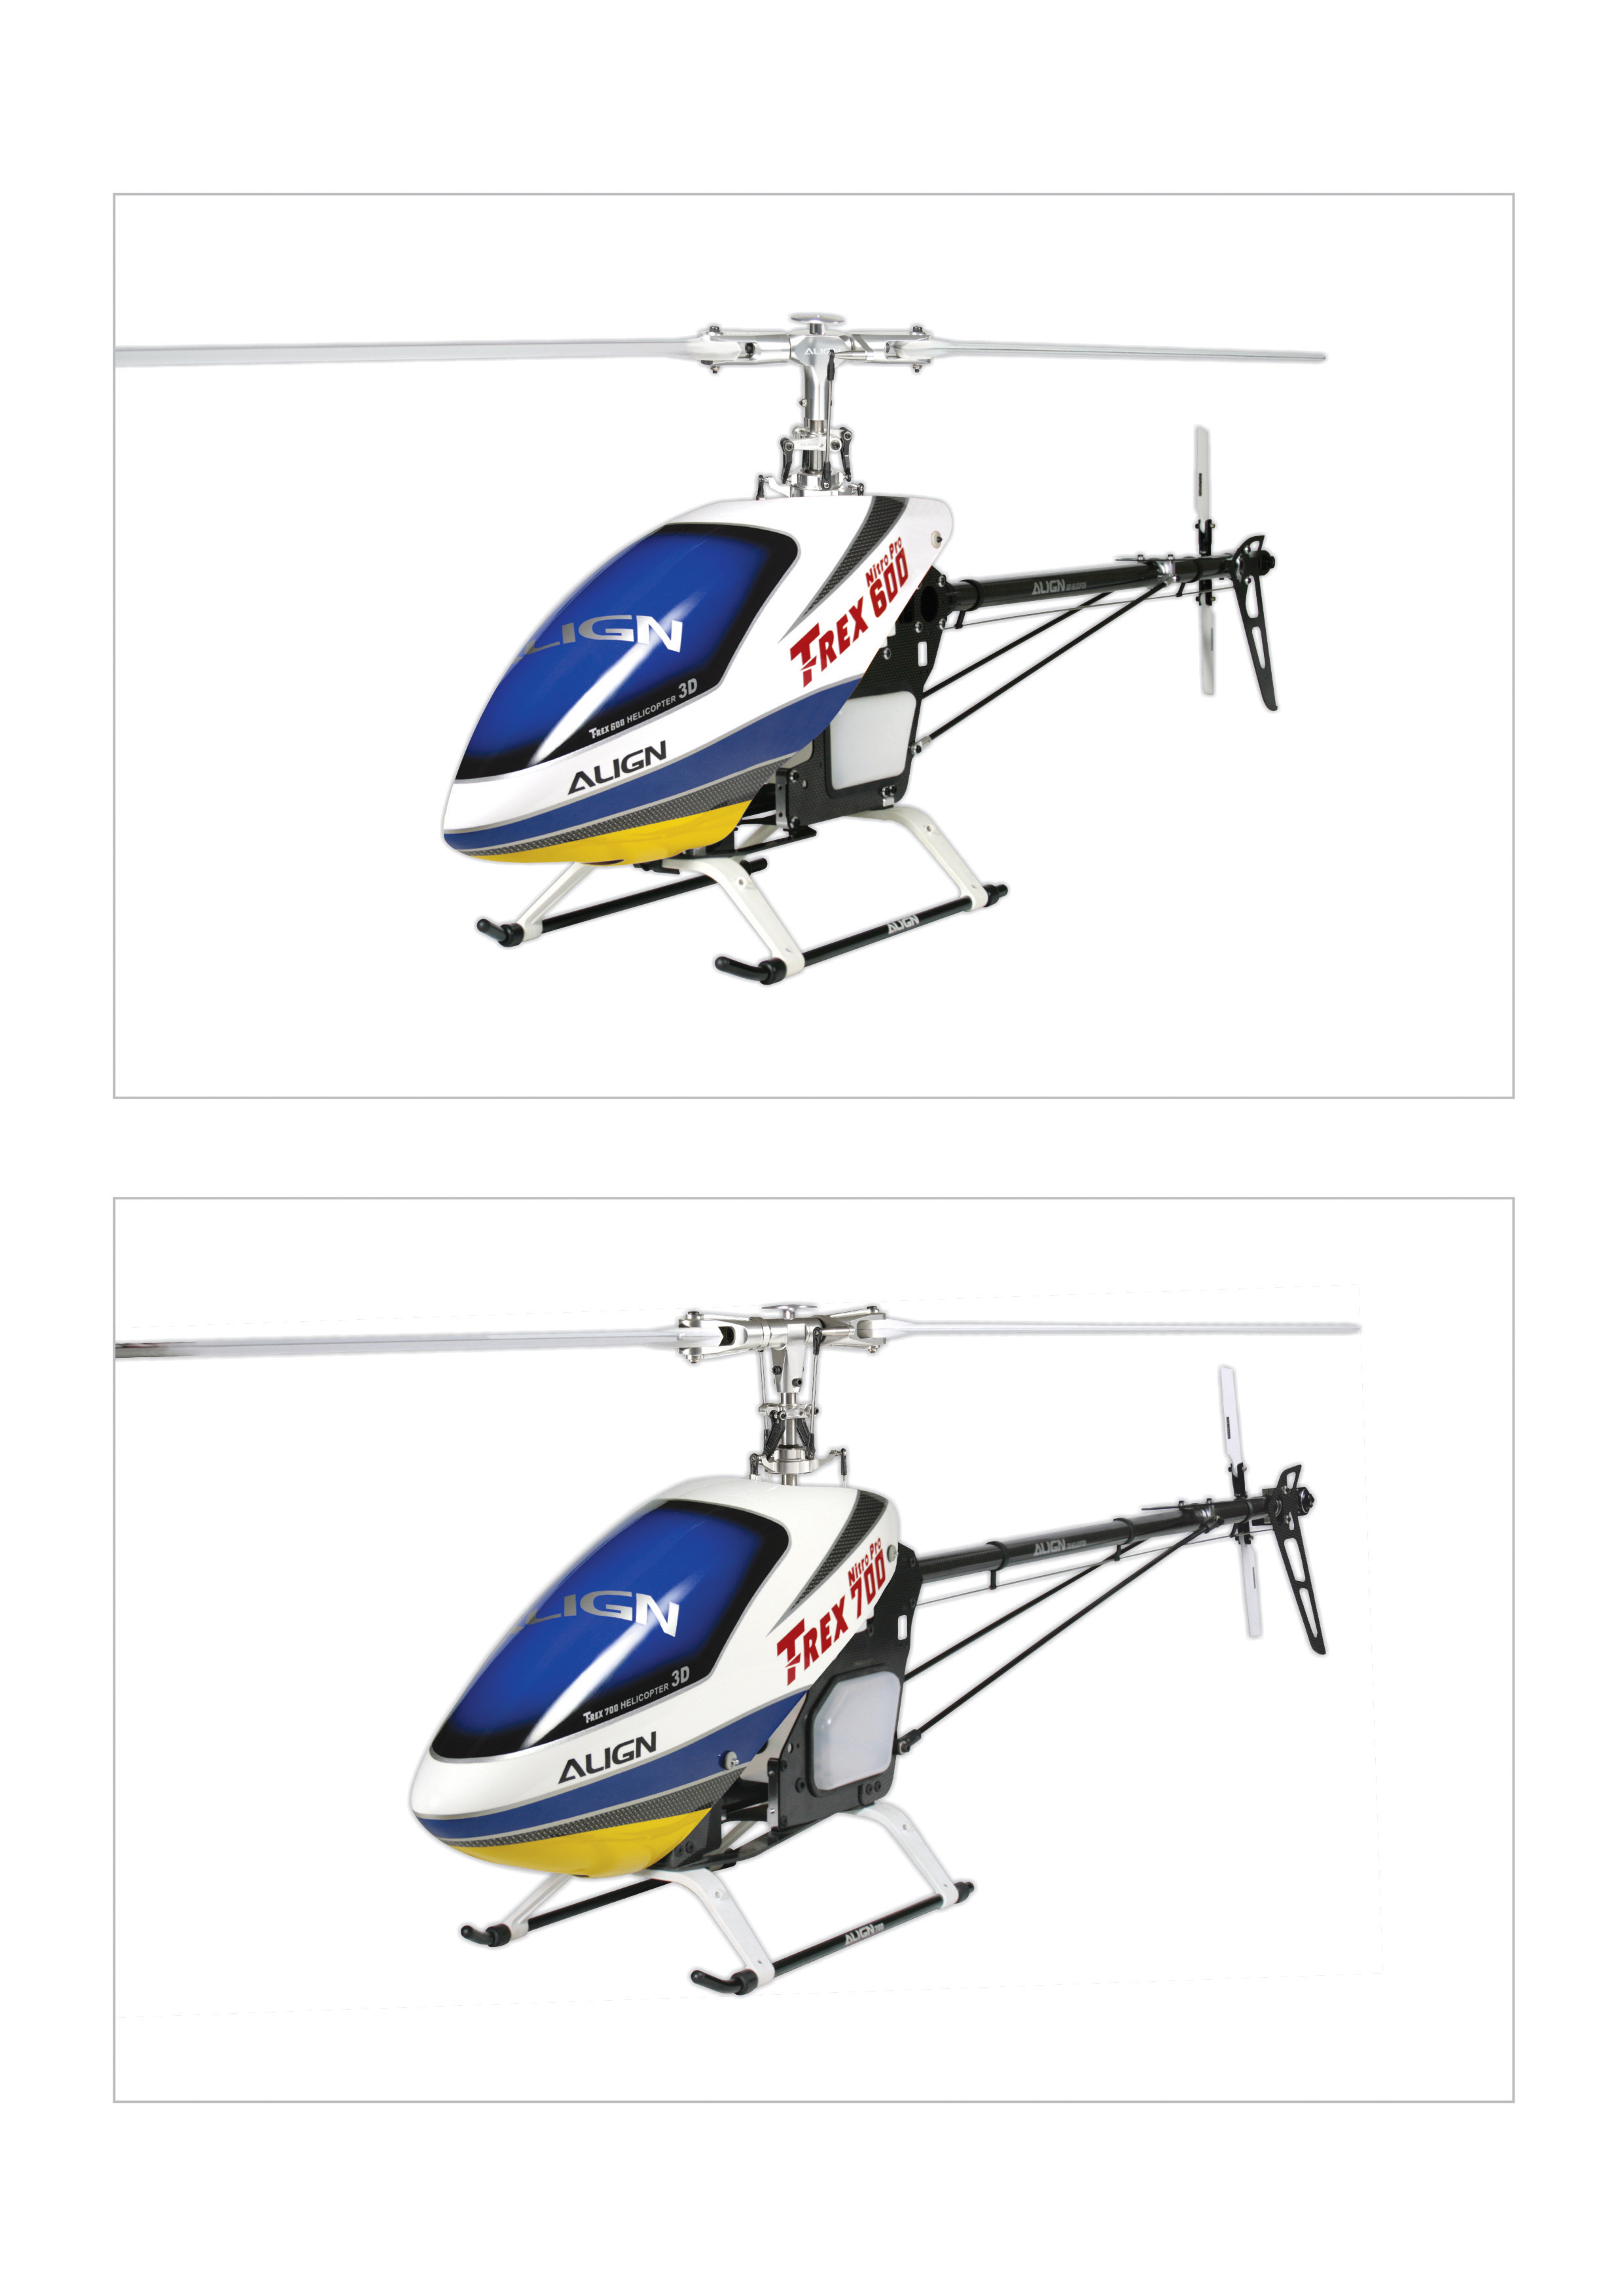 ALIGN RC model products